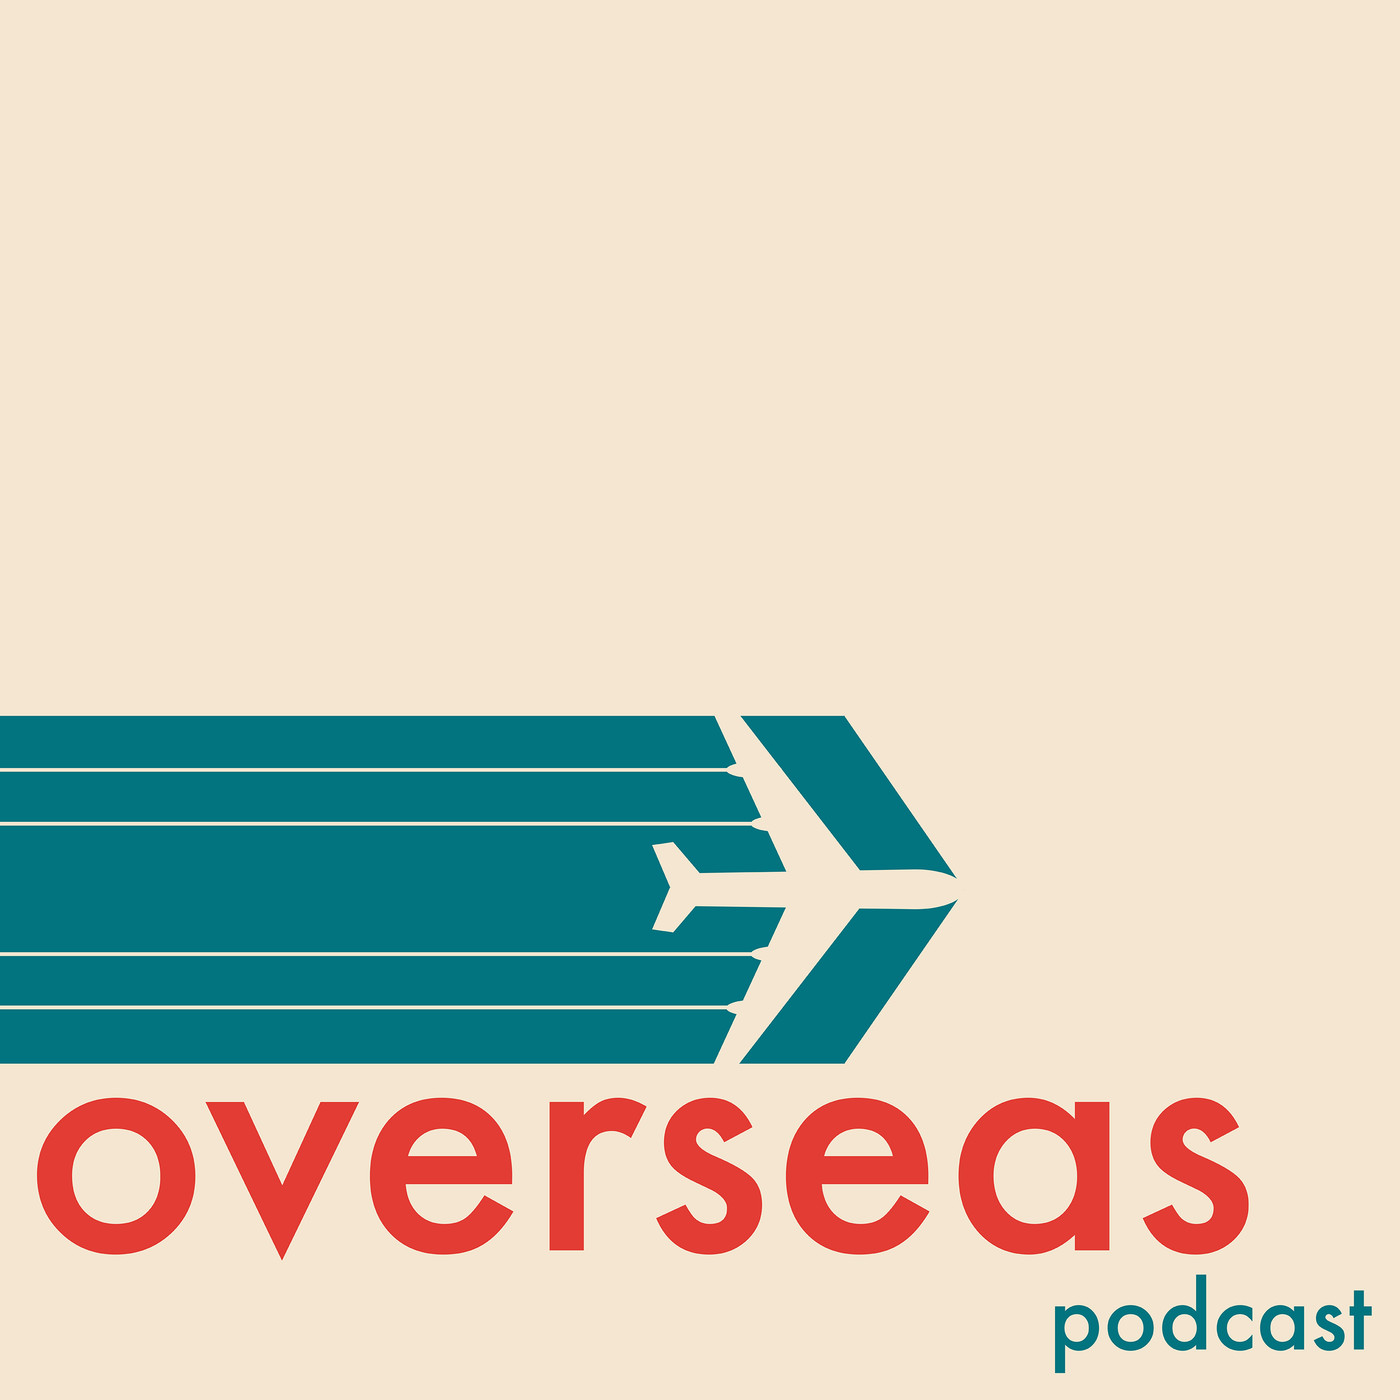 #3 The Overseas Podcast - Conor